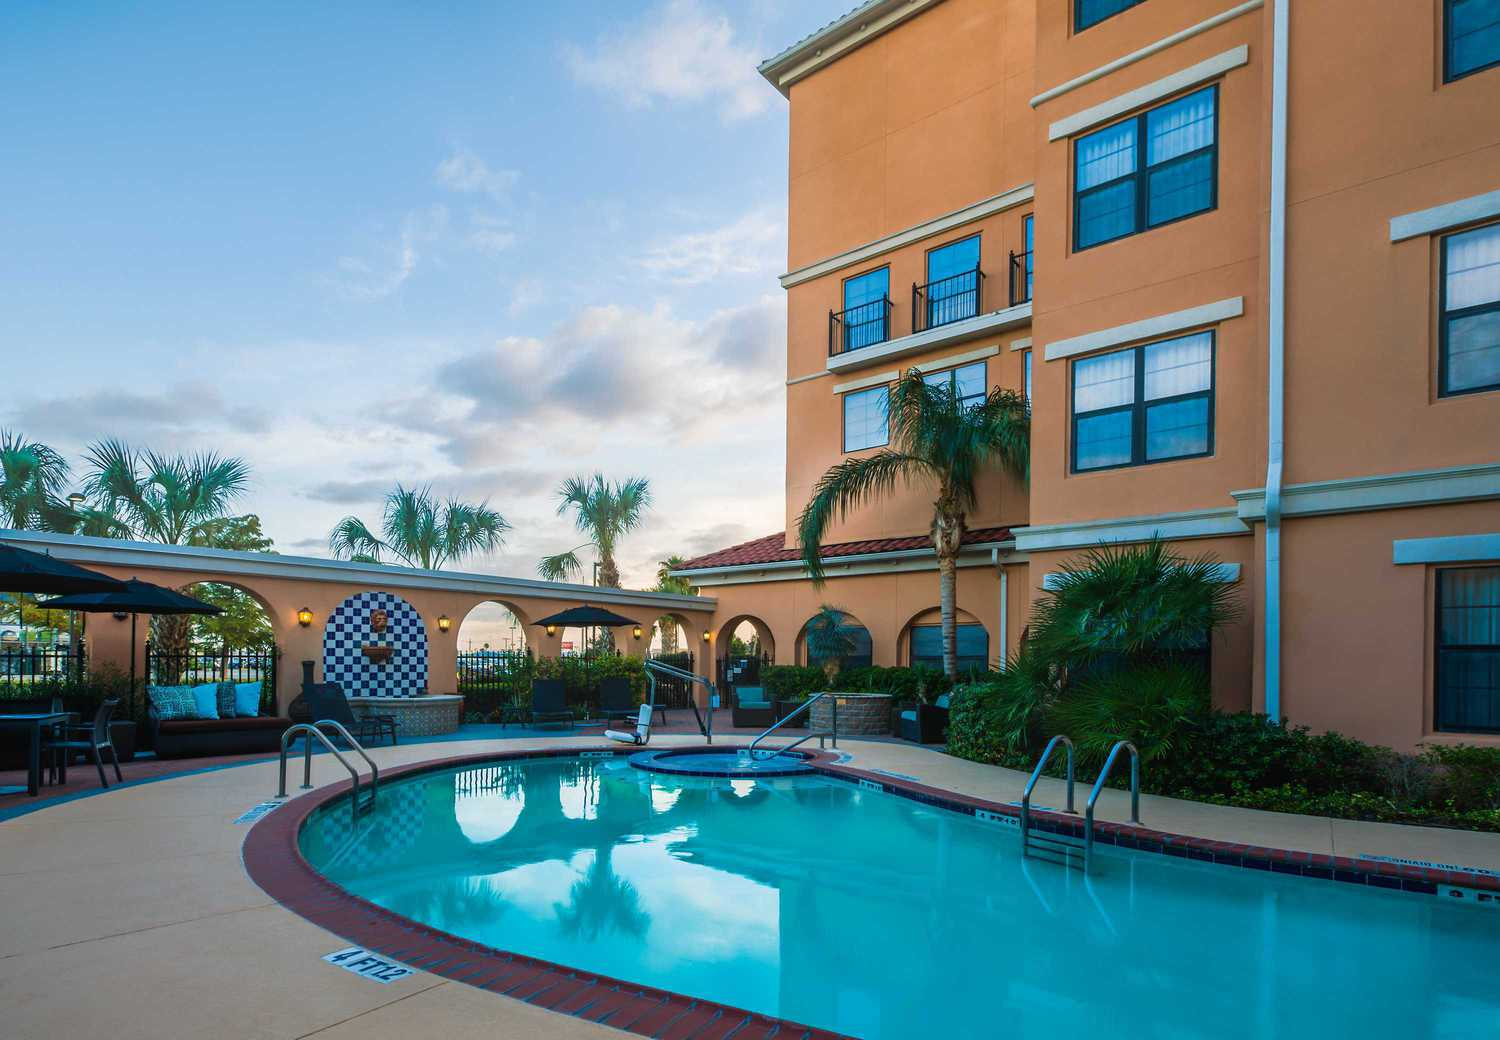 Residence inn laredo del mar laredo tx jobs - Laredo civic center swimming pool ...